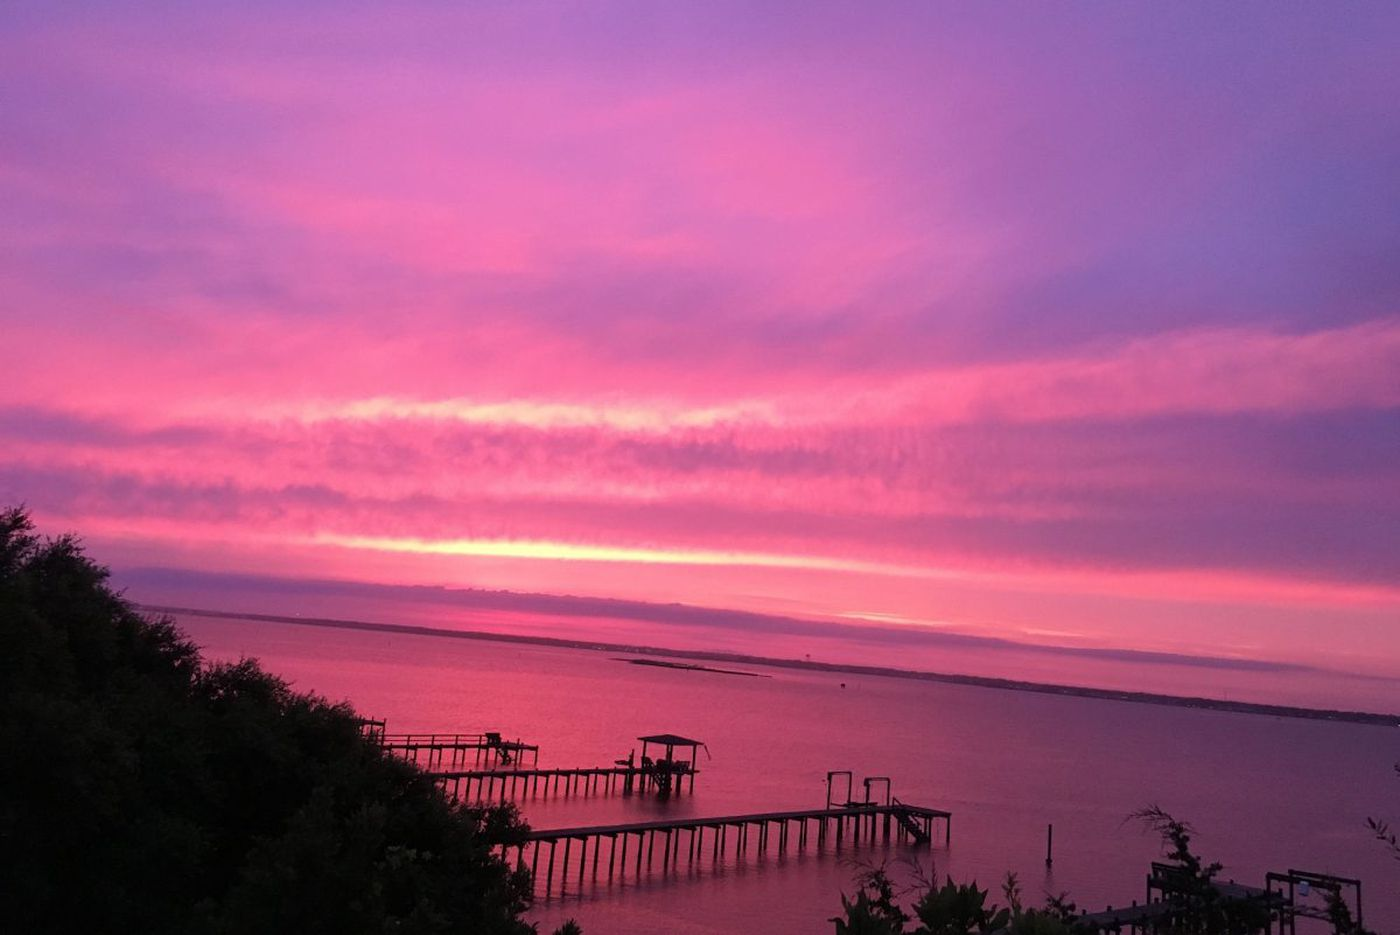 North Carolina's Crystal Coast offers quiet beach vacation with pirate adventures